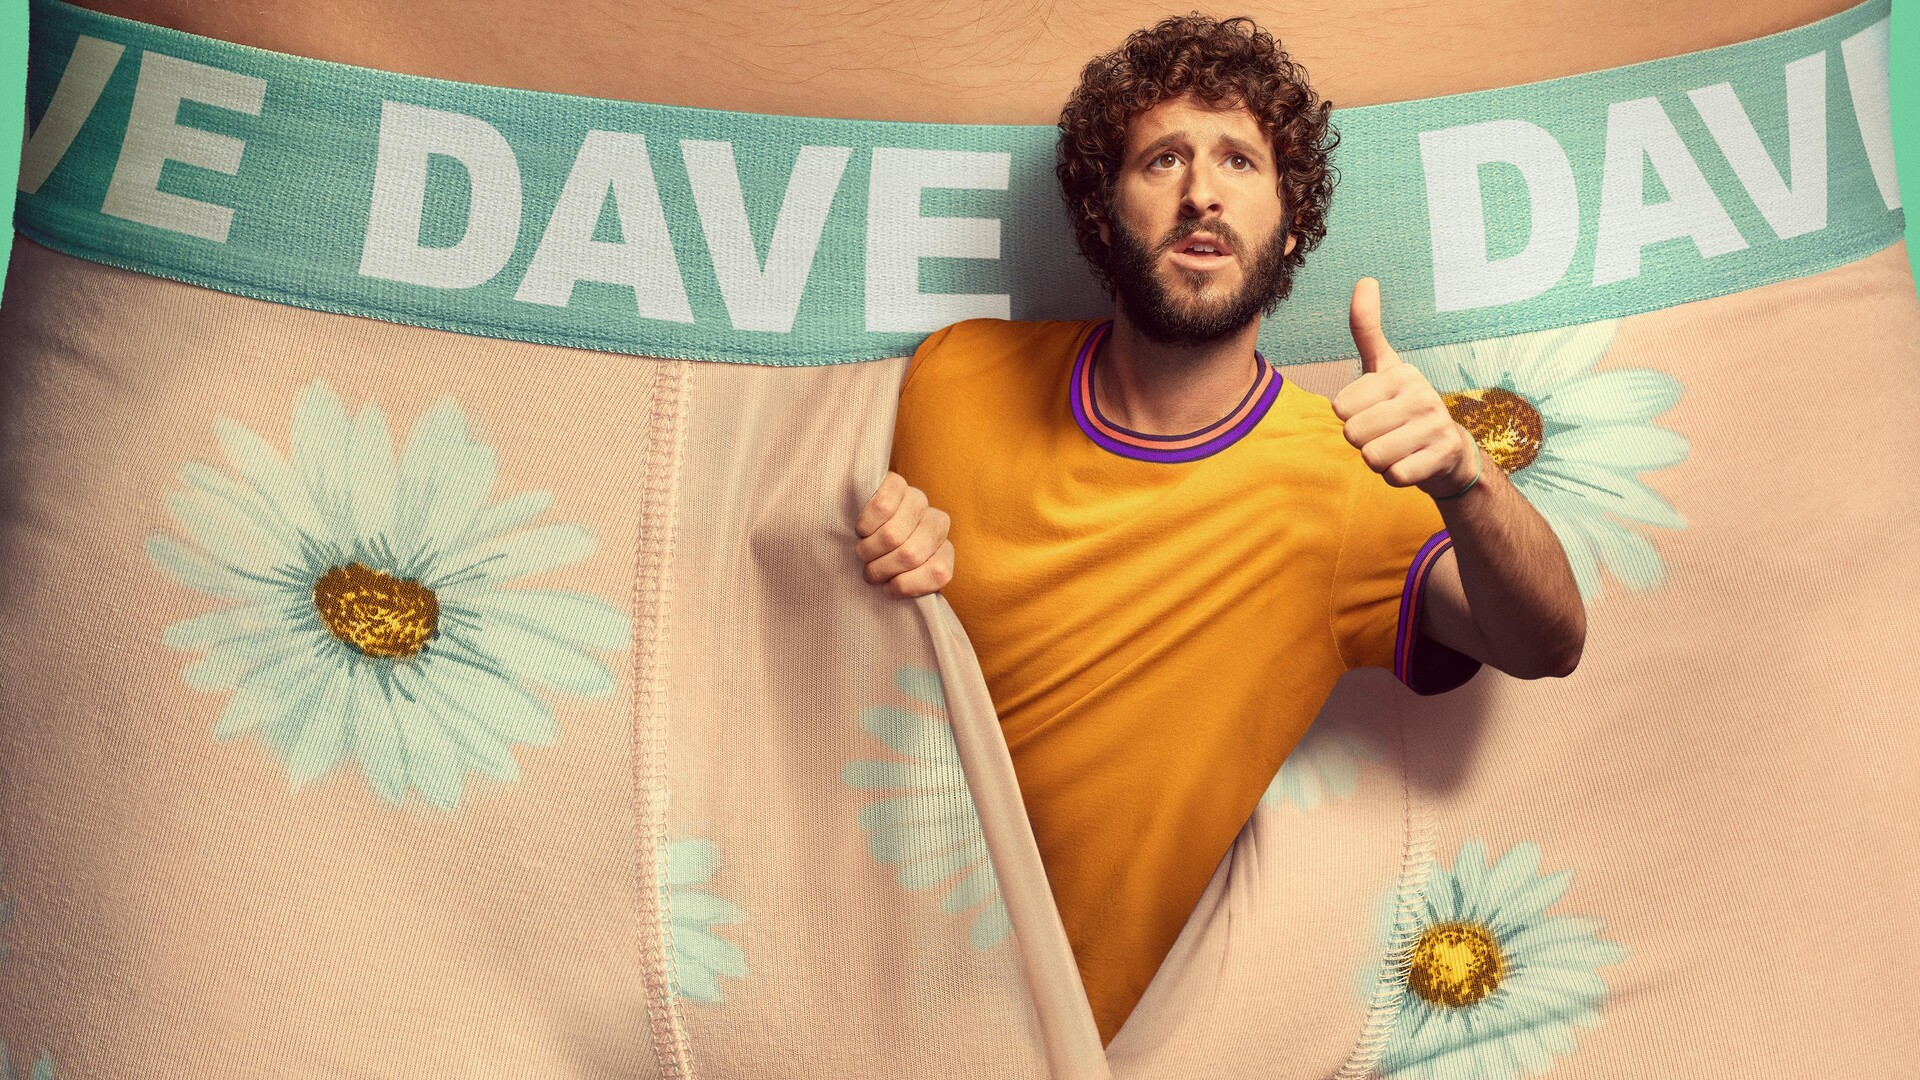 Dave (2020) renewed for second season